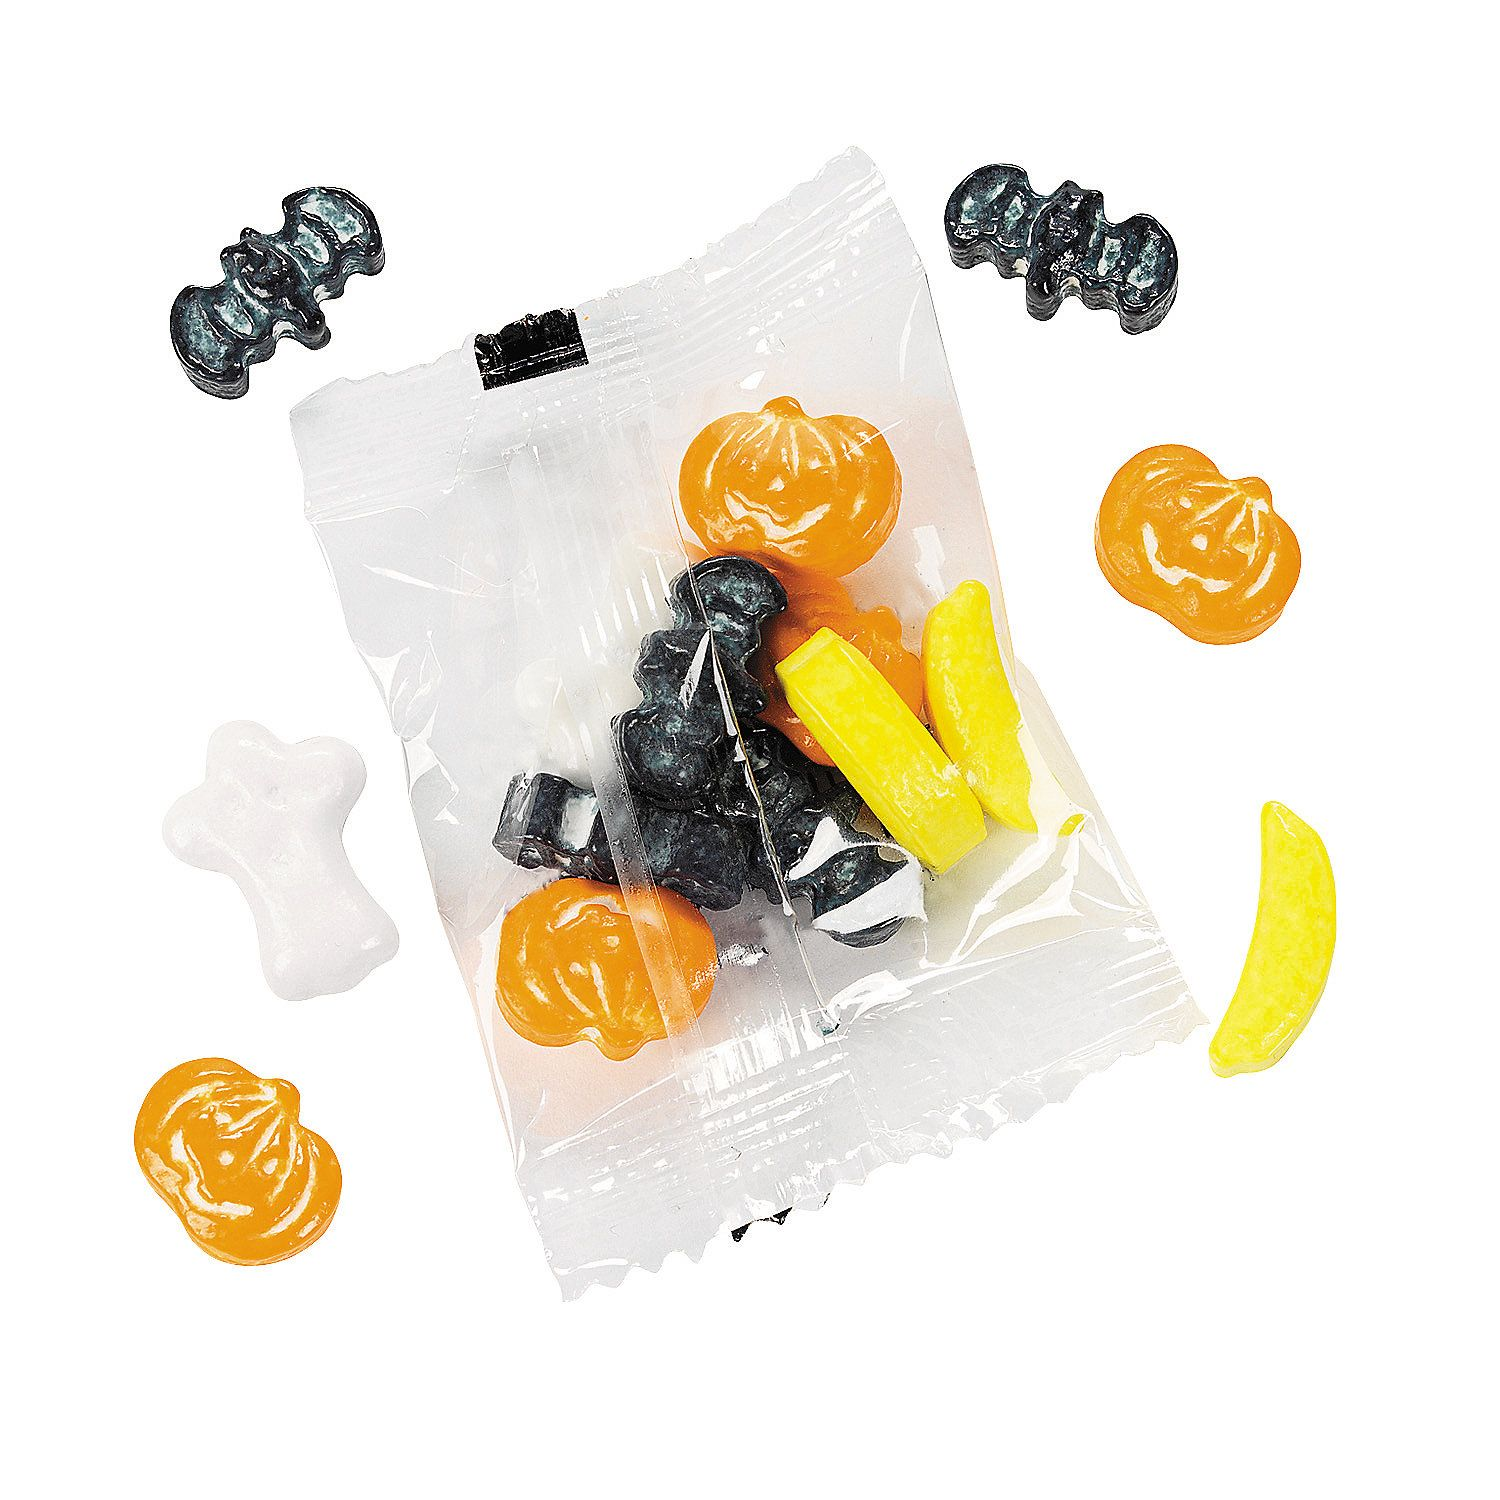 HalloweenShaped Candy Fun Packs Best candy, Halloween